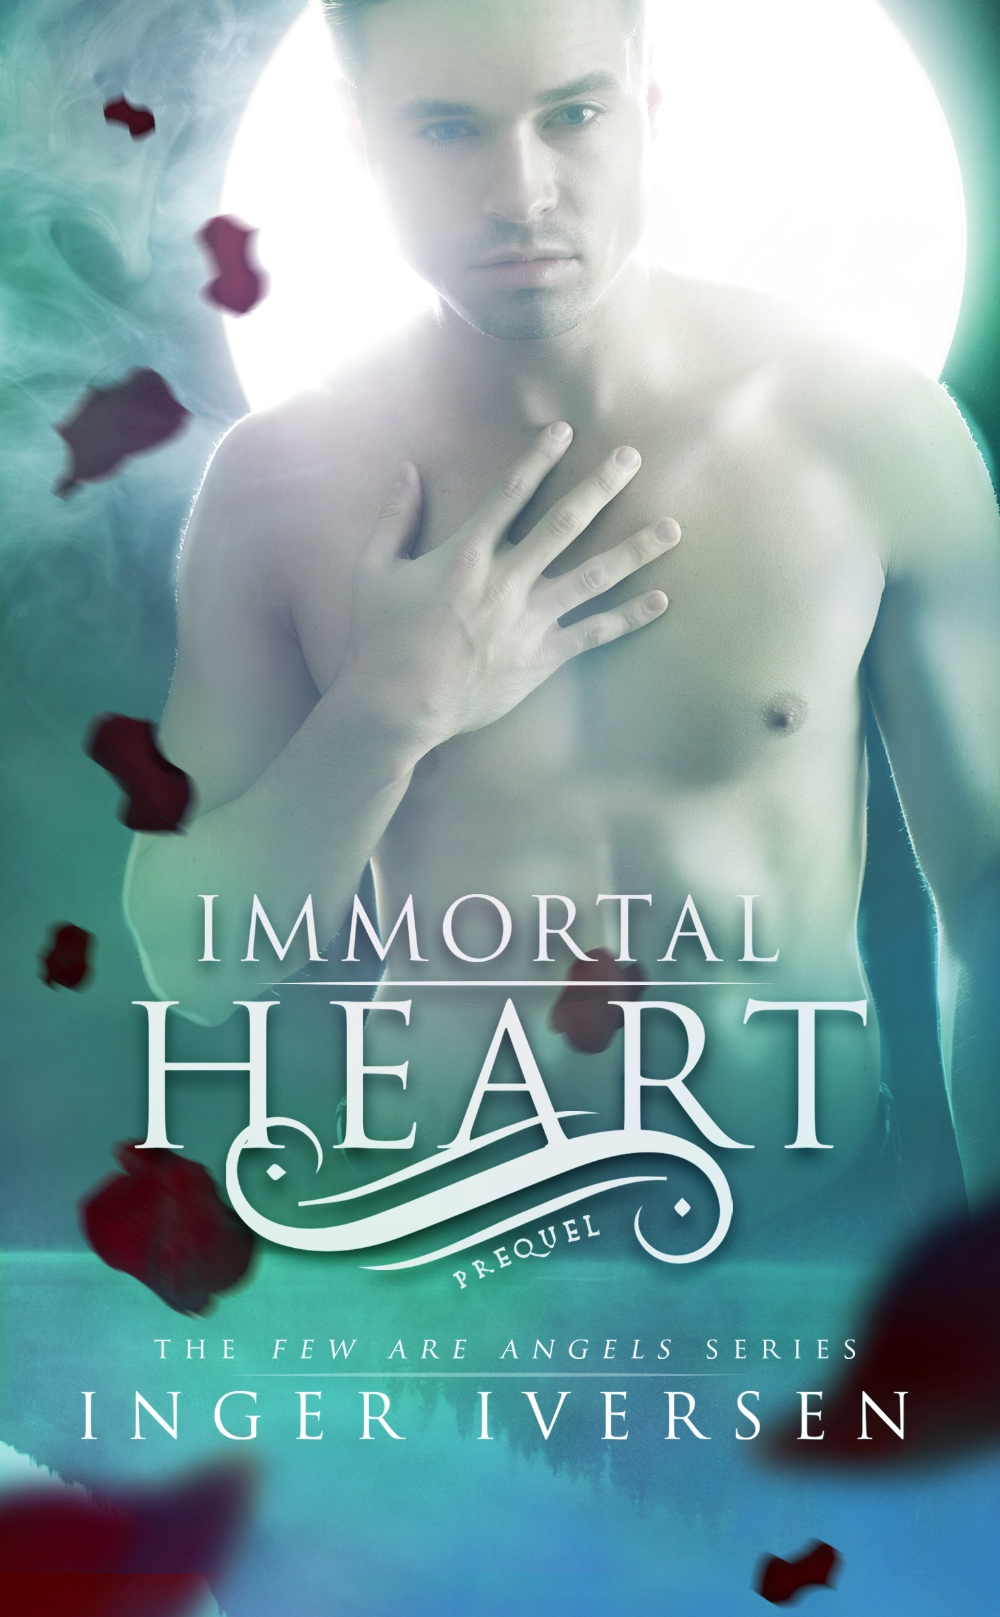 ImmortalHeart_cover.jpg